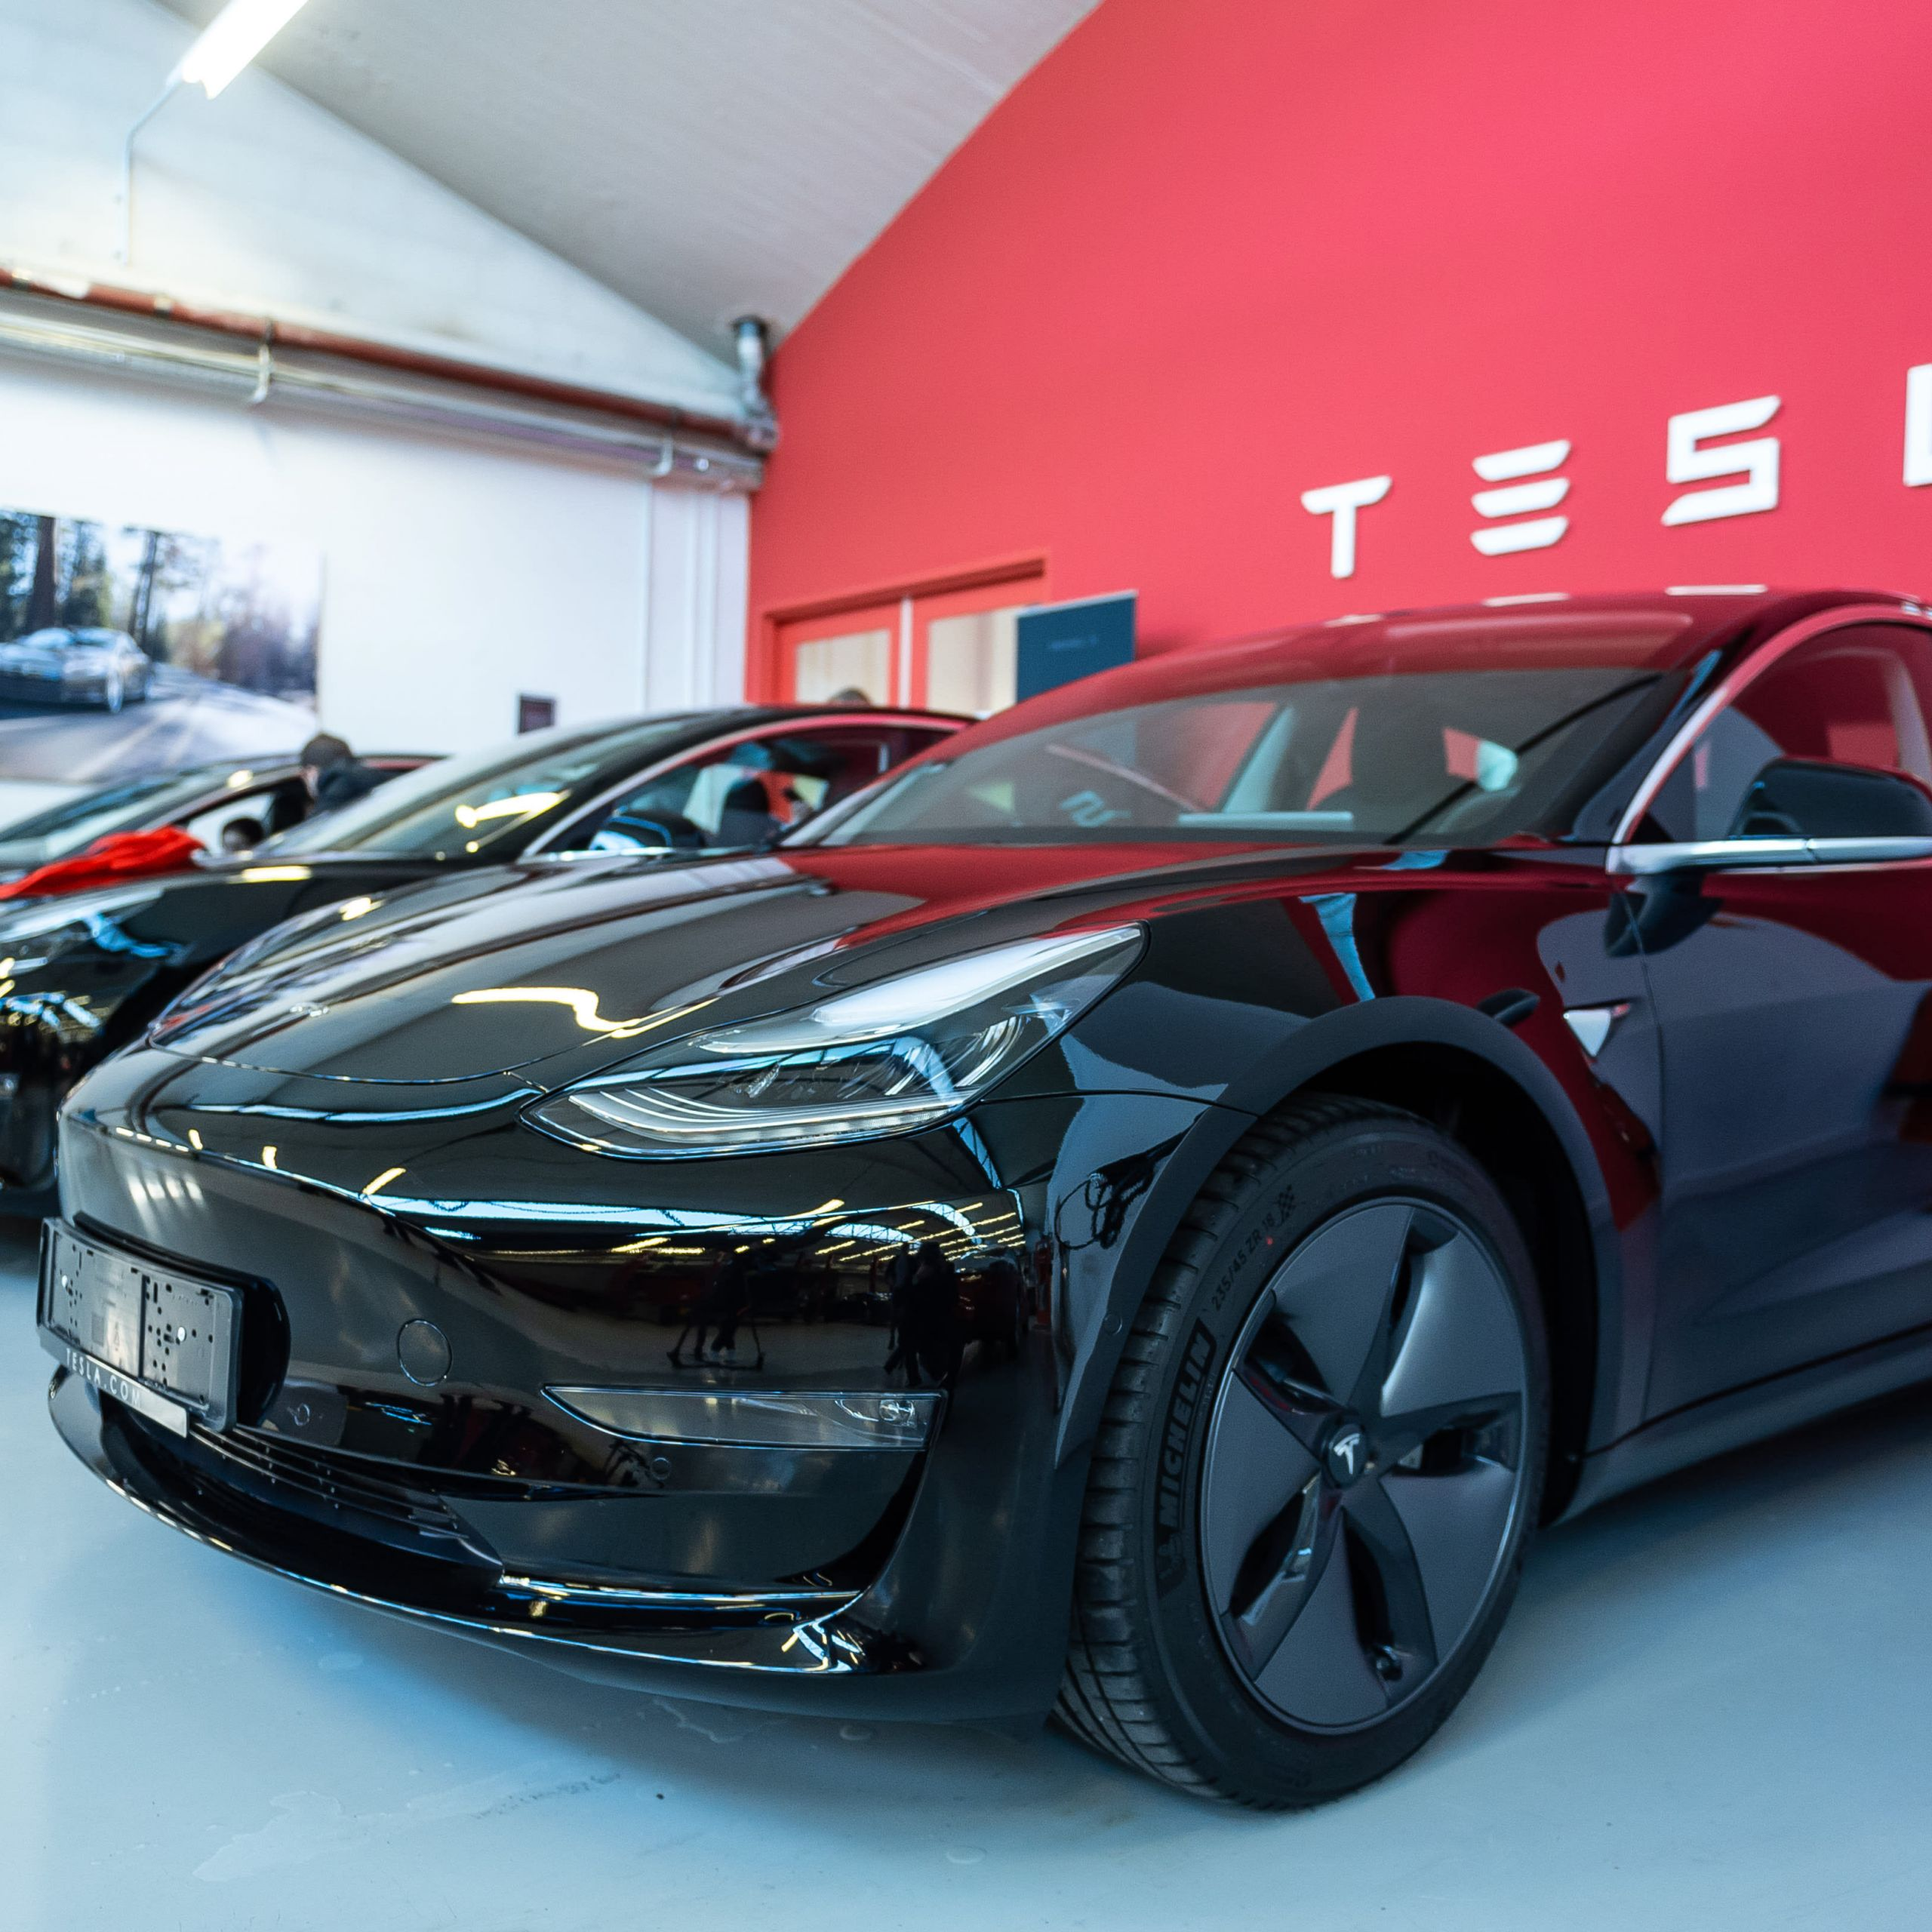 How Often Tesla Updates Lovely Tesla Tsla 3q 2019 Production and Delivery Numbers